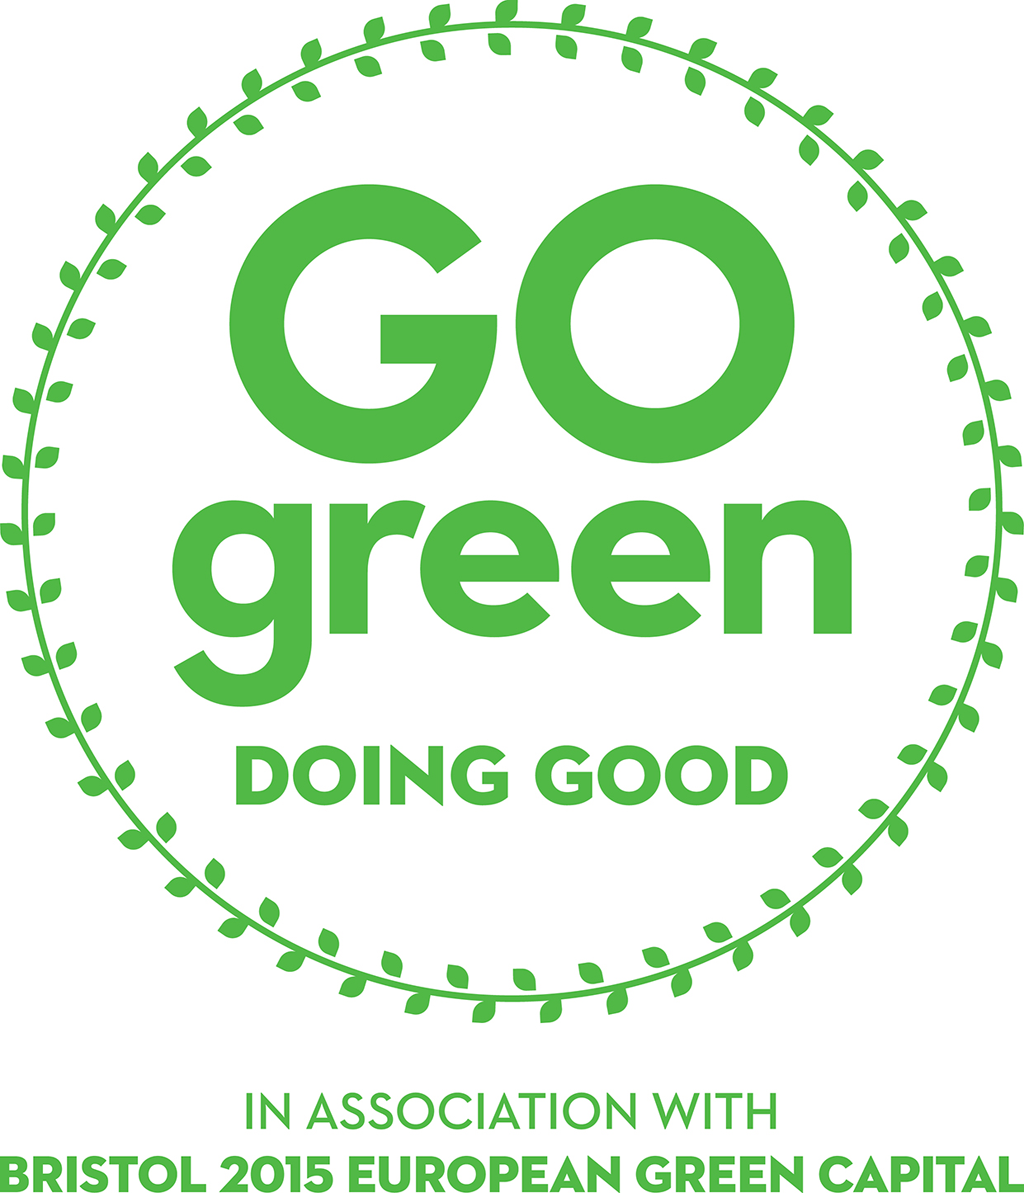 Go Green Doing Good Bristol 2015